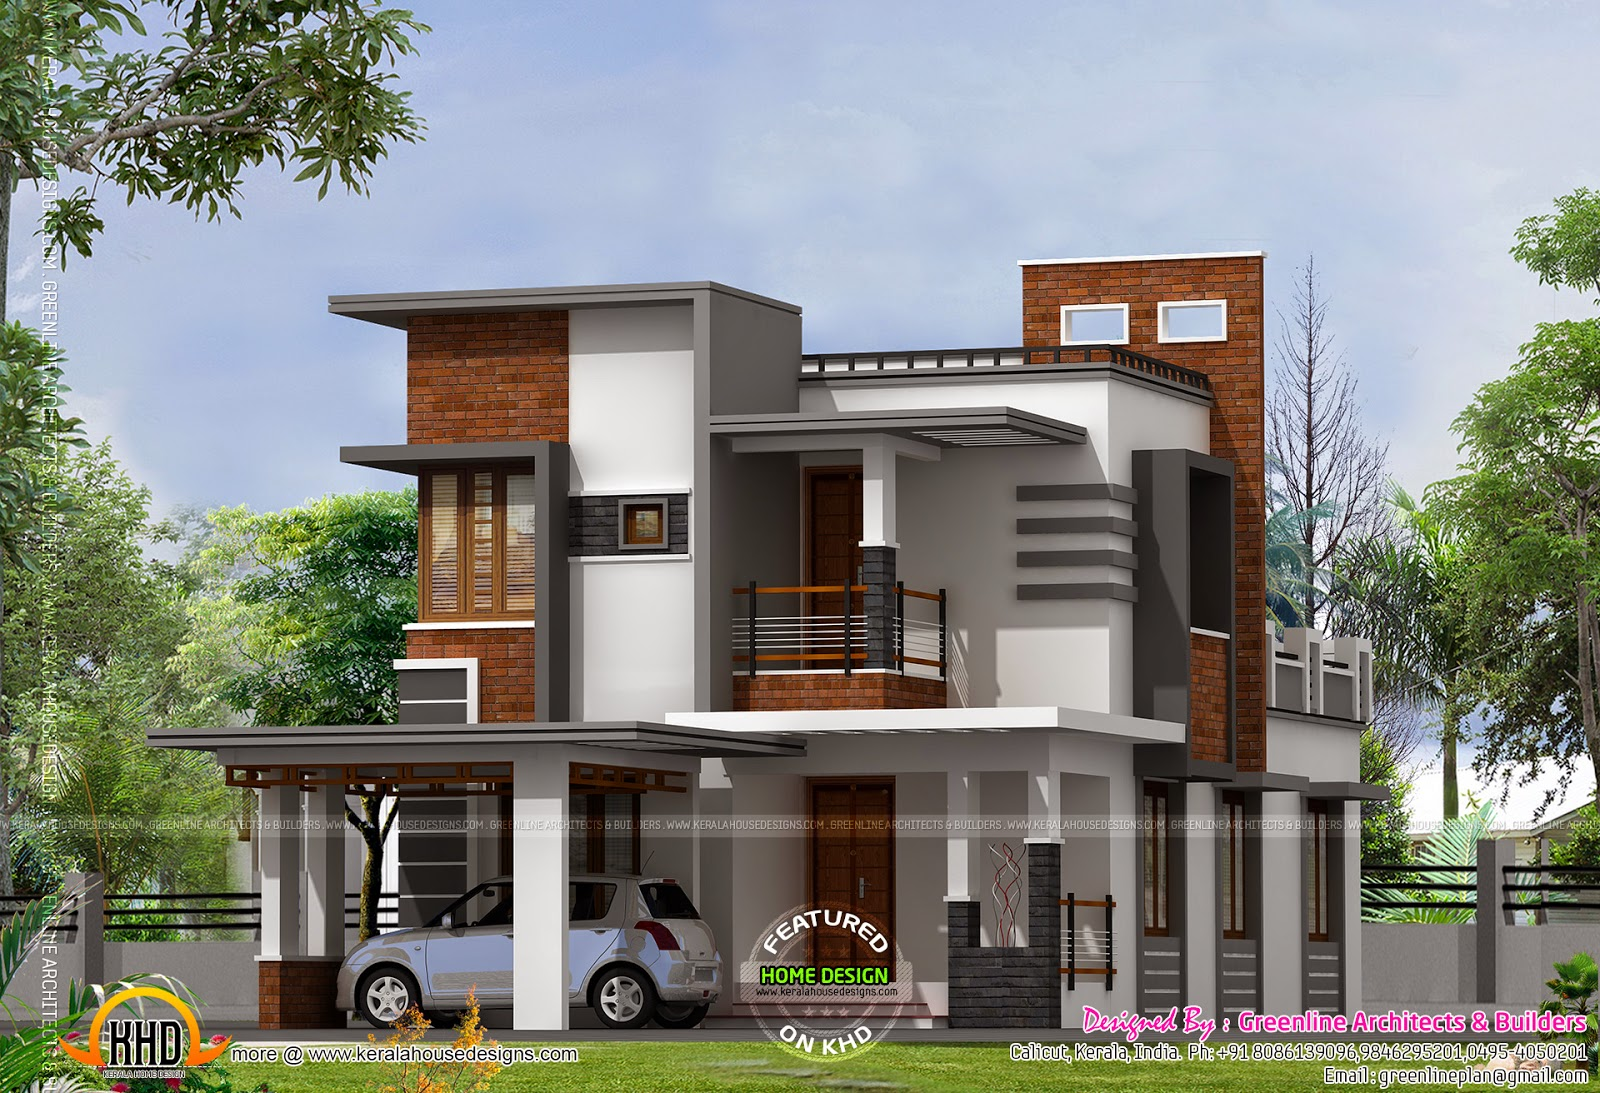 Low cost contemporary house kerala home design and floor for Kerala home designs contemporary